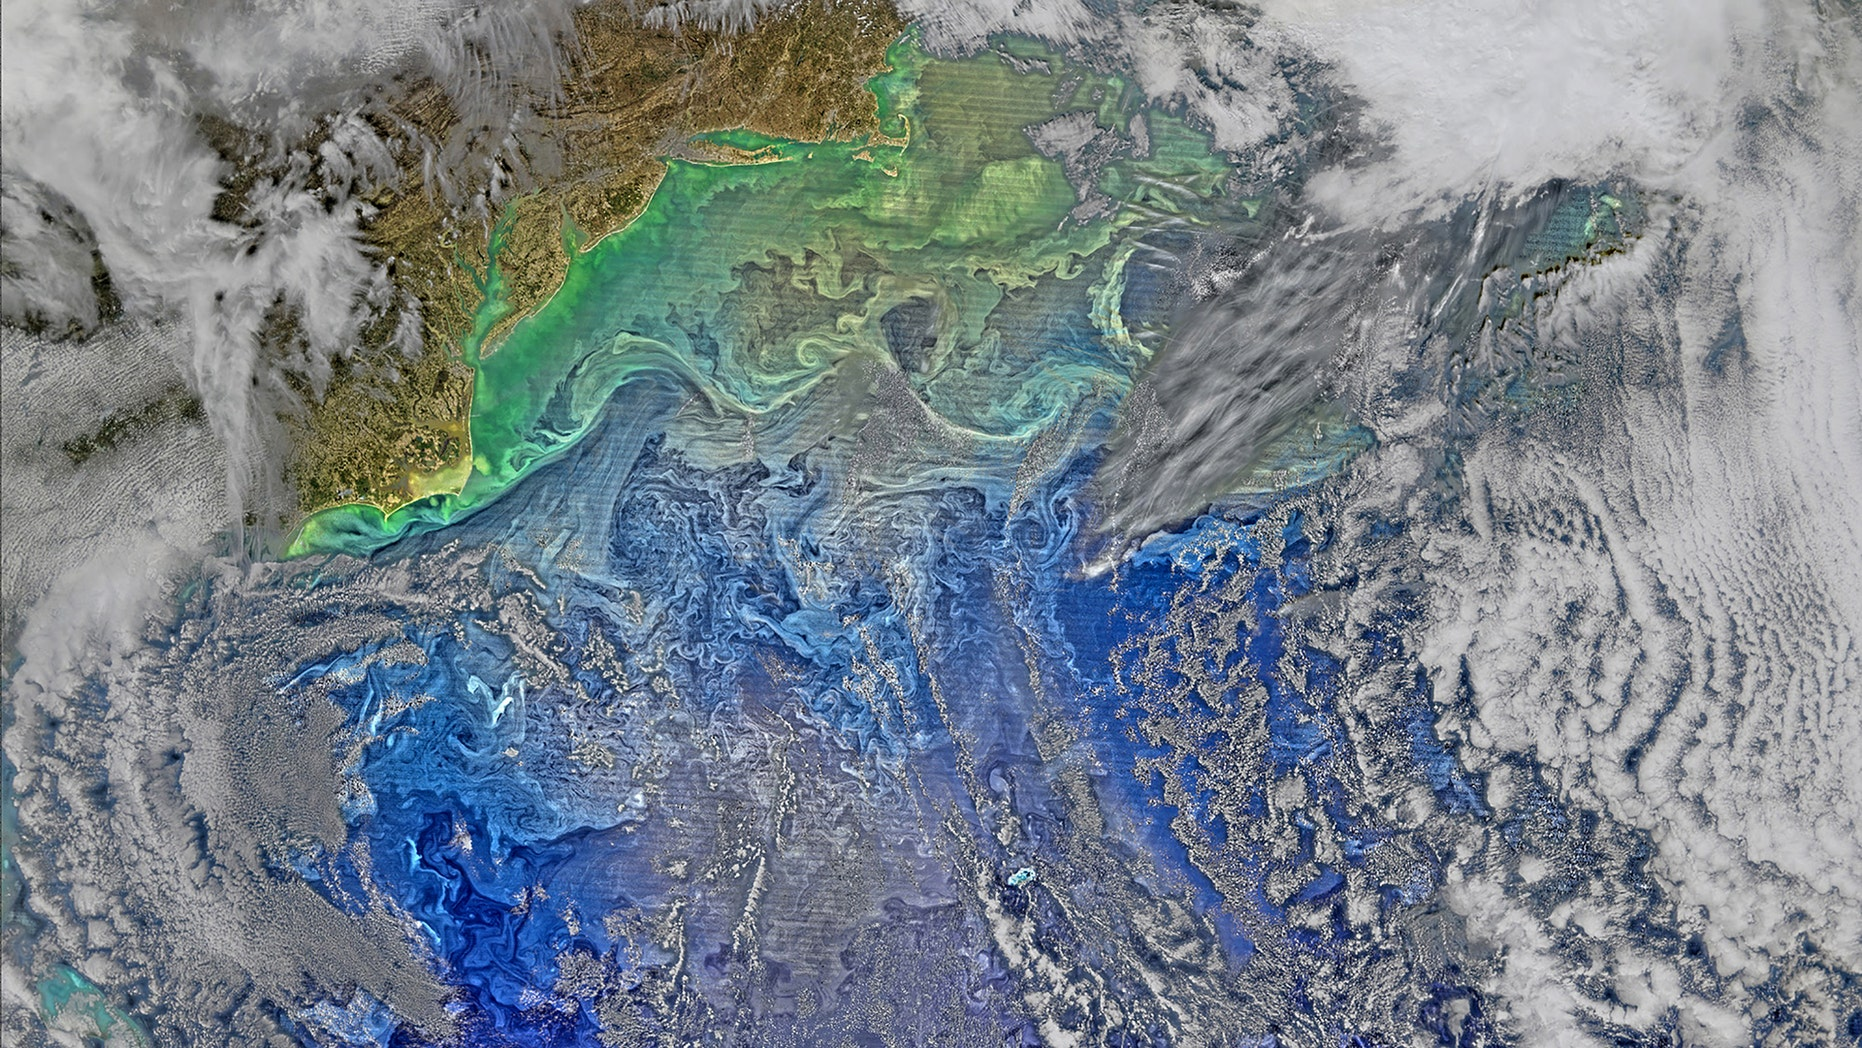 File photo: The Gulf Stream waters flow in somewhat parallel layers, slicing across what is otherwise a fairly turbulent western North Atlantic Ocean in this image collected by the Visible Infrared Imaging Radiometer Suite on NASA-NOAA's Suomi NPP satellite March 9, 2016, and released April 5, 2016. The turbulence is made visible by the pigmented phytoplankton it entrains, according to a NASA news release. Picture taken March 9, 2016. (REUTERS/NASA/NOAA/Handout)